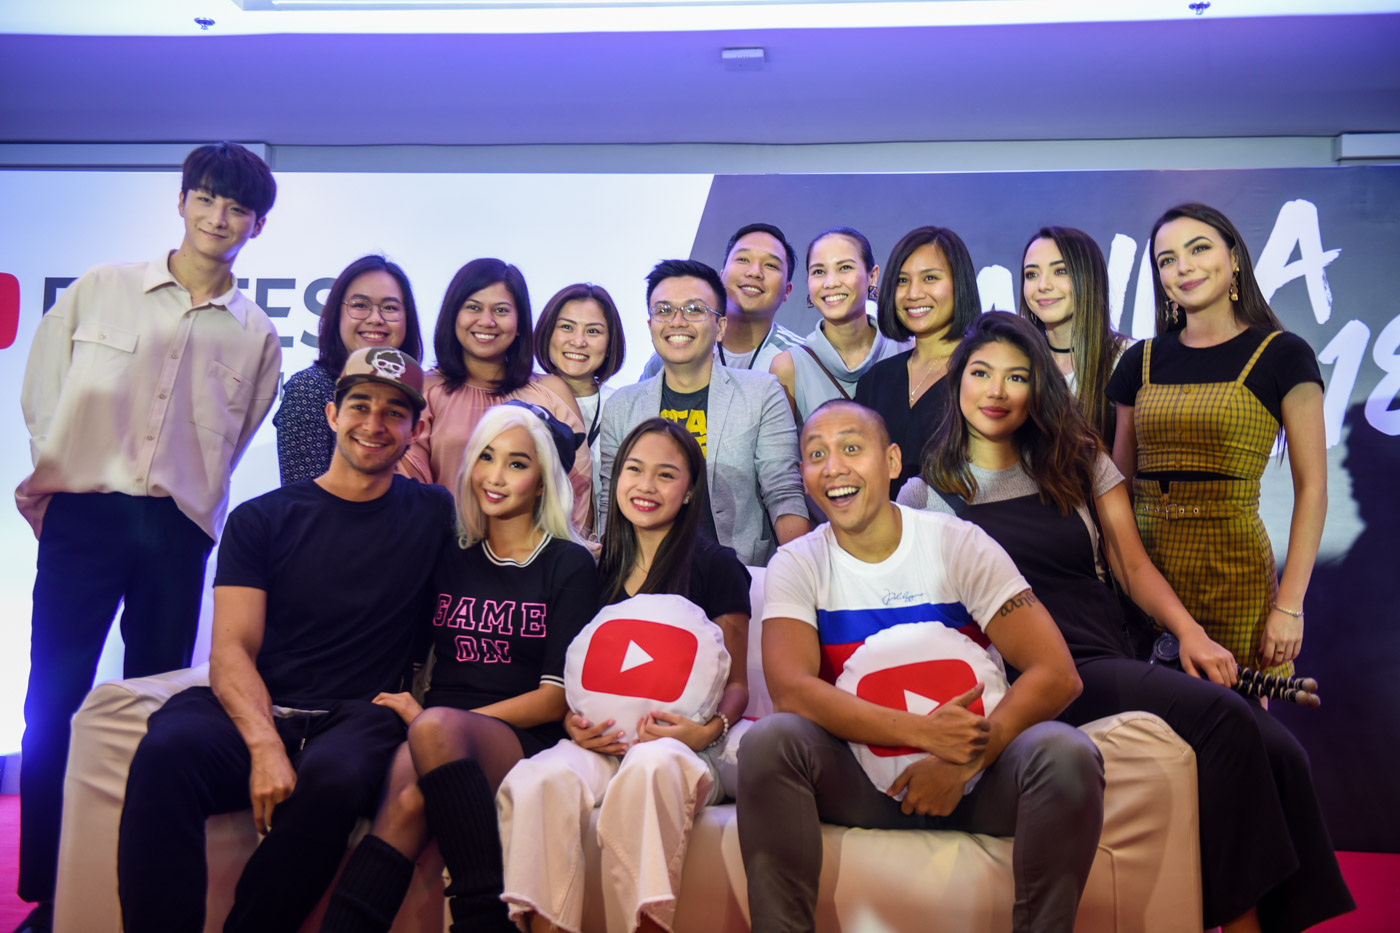 YOUTUBE FANFEST 2018. The Youtube stars and personalities gather once again for the annual YouTube Fanfest to meet their fans and supporters. Photos by Alecs Ongcal/Rappler